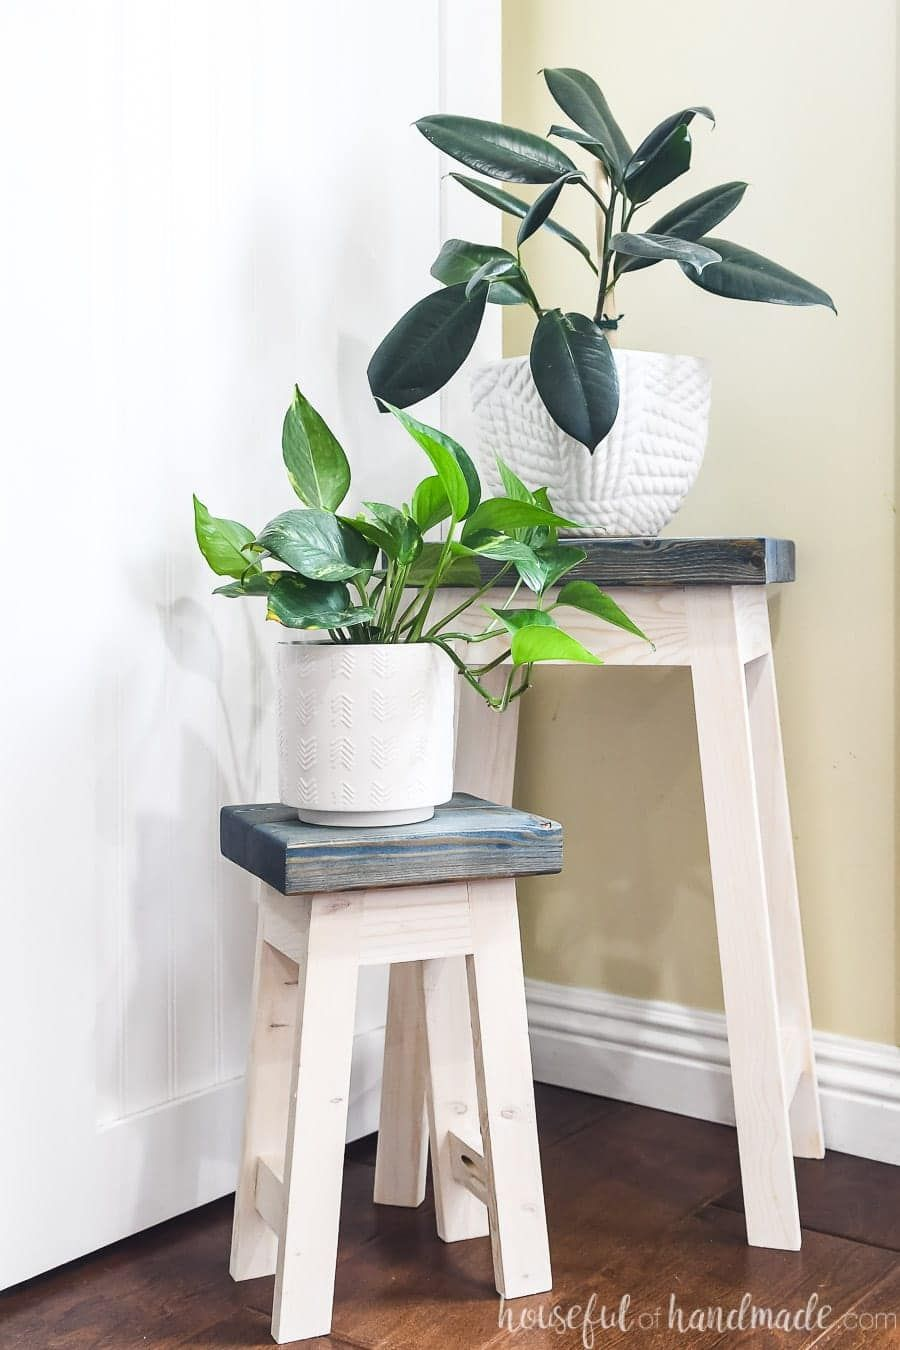 Nesting Plant Stands Build Plans Small House Plants Diy Plant Stand Wood Plant Stand